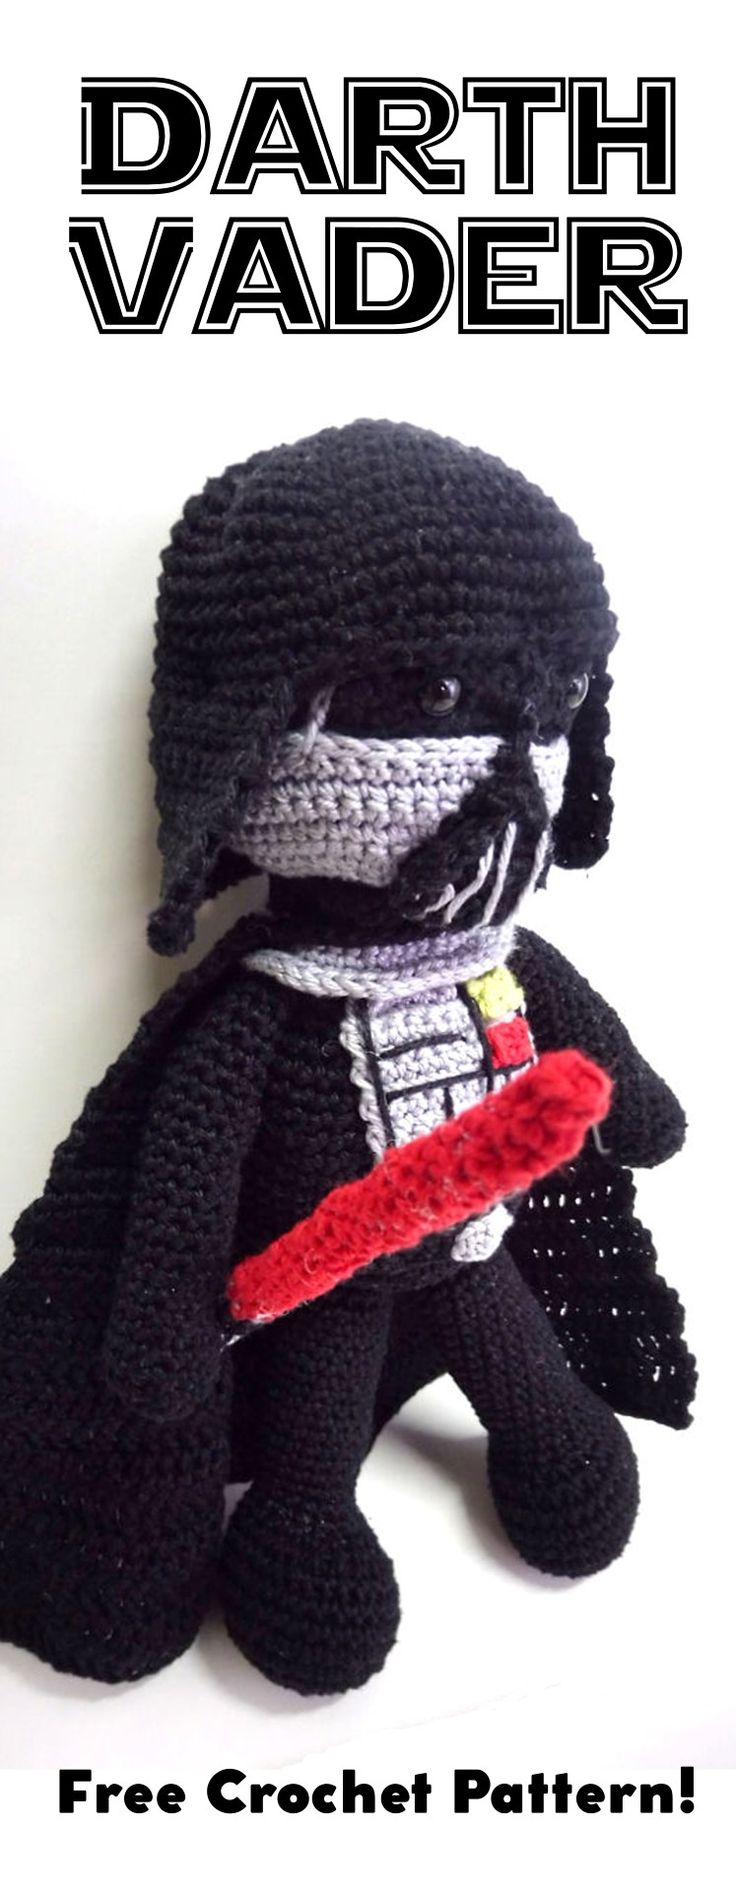 Darth Vader amigurumi, Darth Vader crochet, Darth Vader crochet pattern, Darth Vader free crochet pattern, Star Wars amigurumi, Star Wars crochet, Star Wars crochet pattern, Star Wars free crochet pattern, Darth Vader crochet toy, Star Wars crochet toy, Darth Vader amigurumi doll, Star Wars amigurumi doll